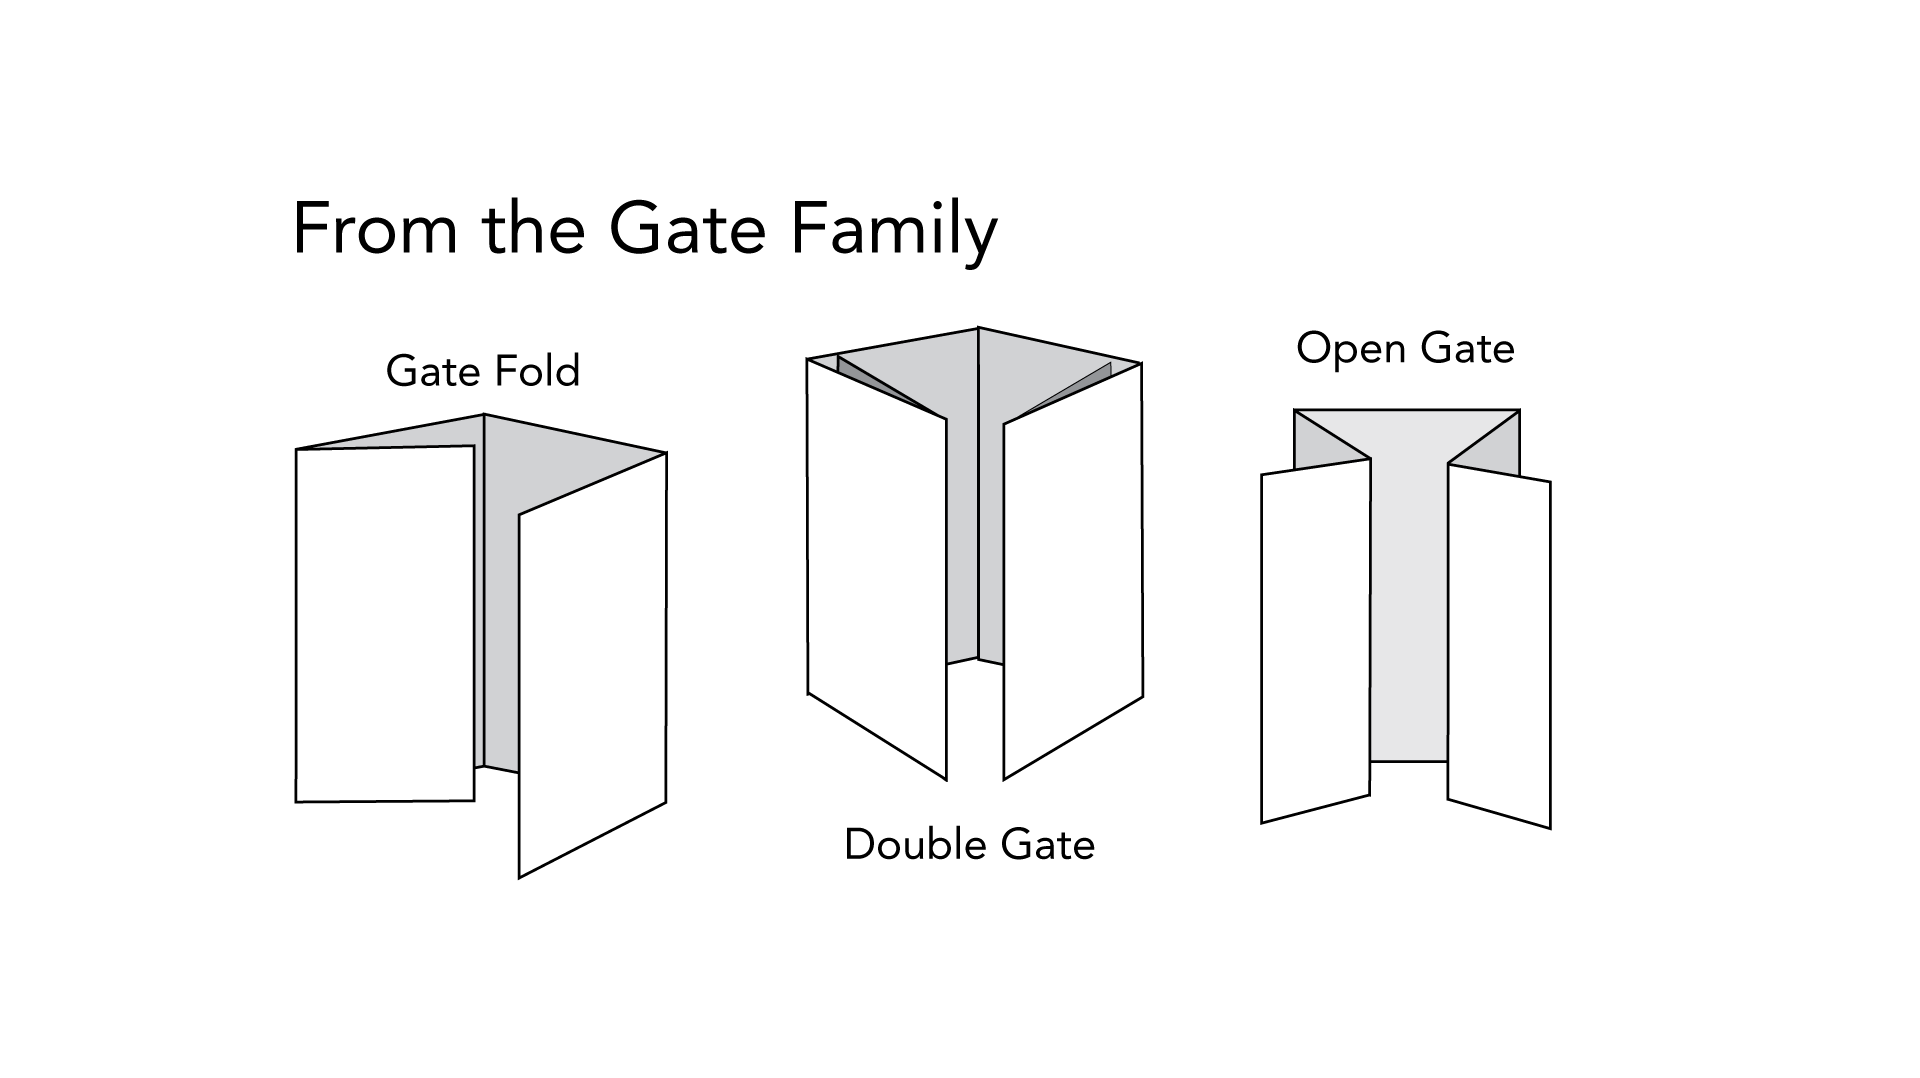 Rewind] Debunking the Gate Fold Myth